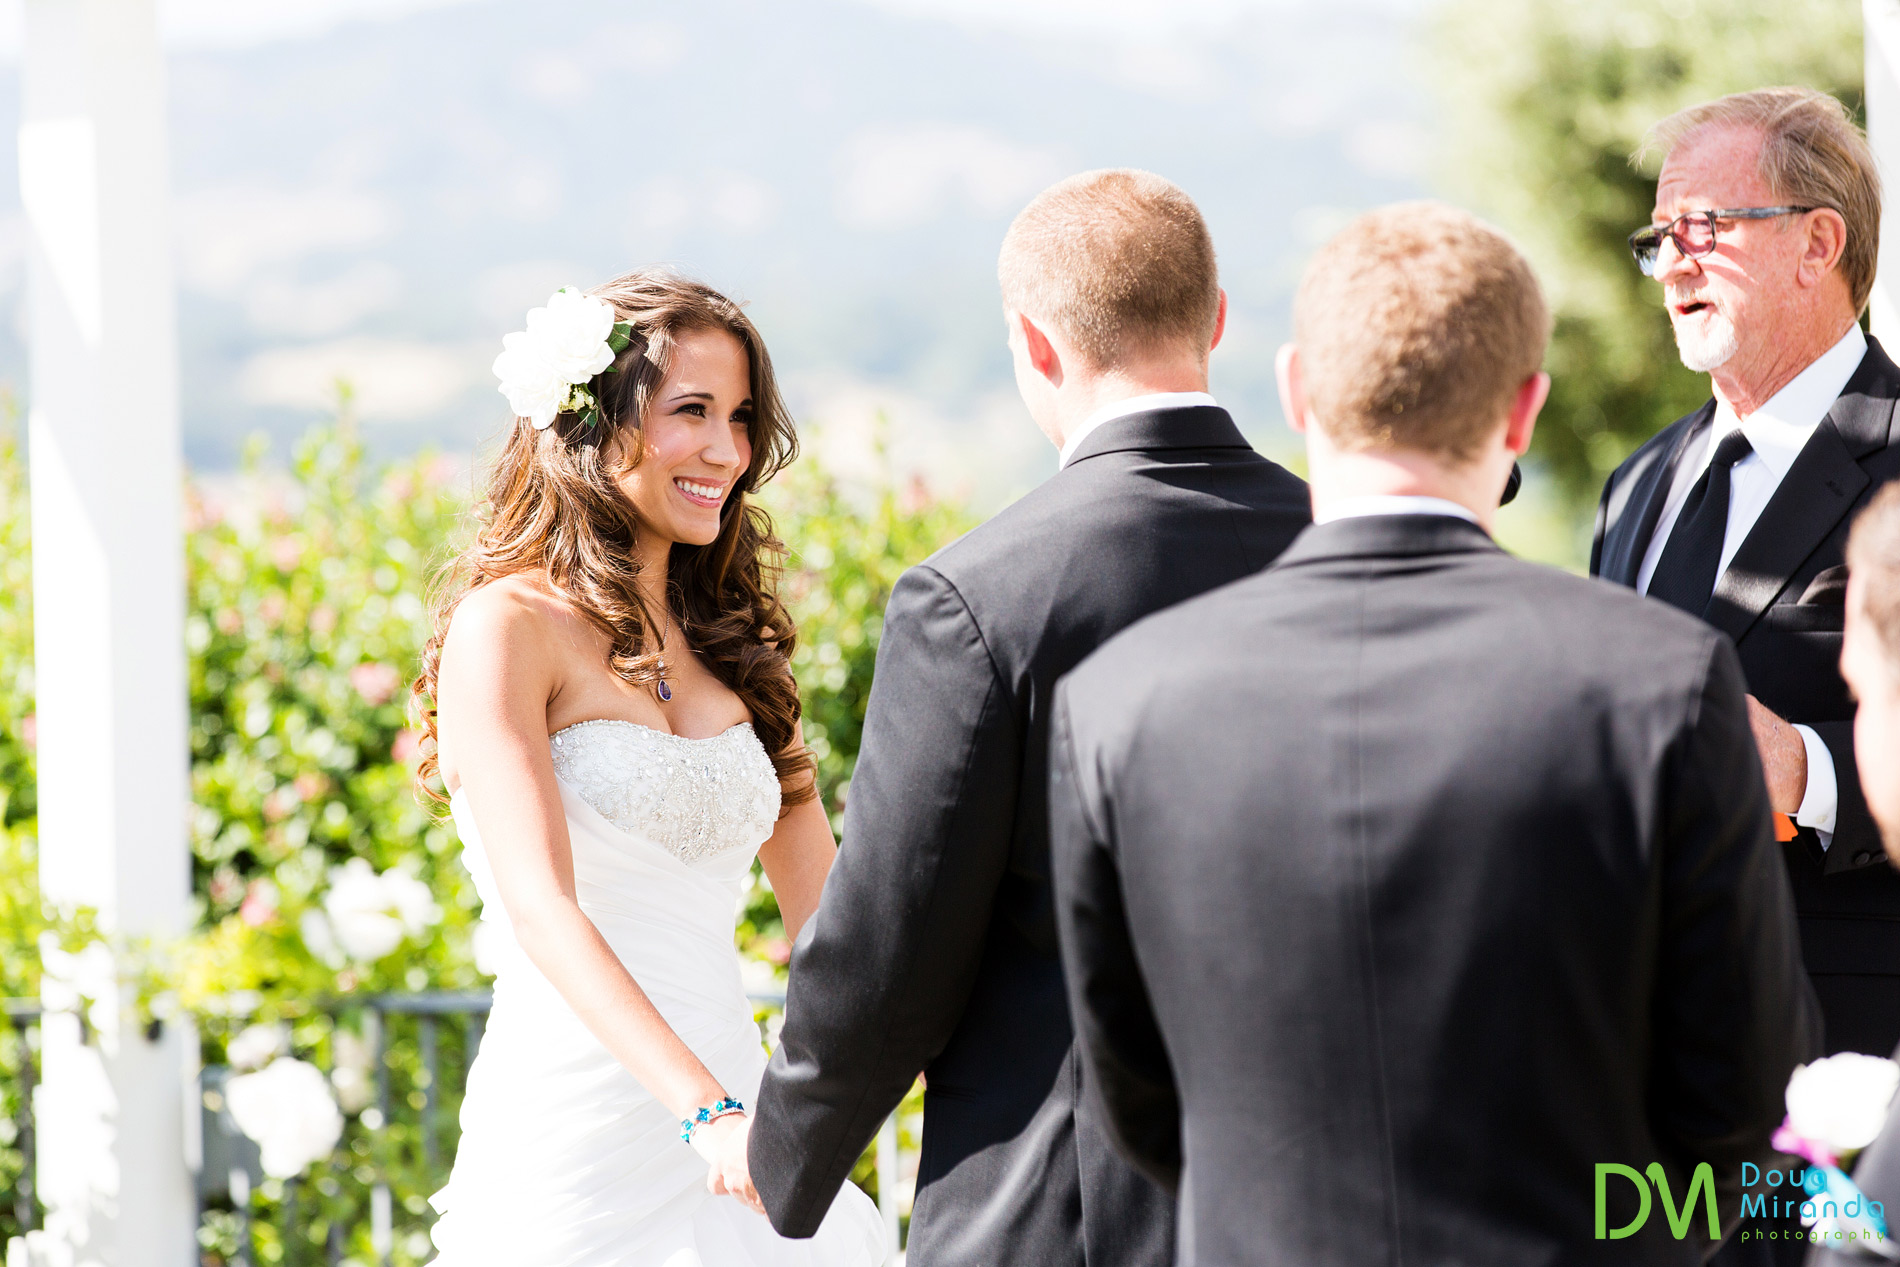 It's always fun to see bride's reactions during the wedding ceremony.